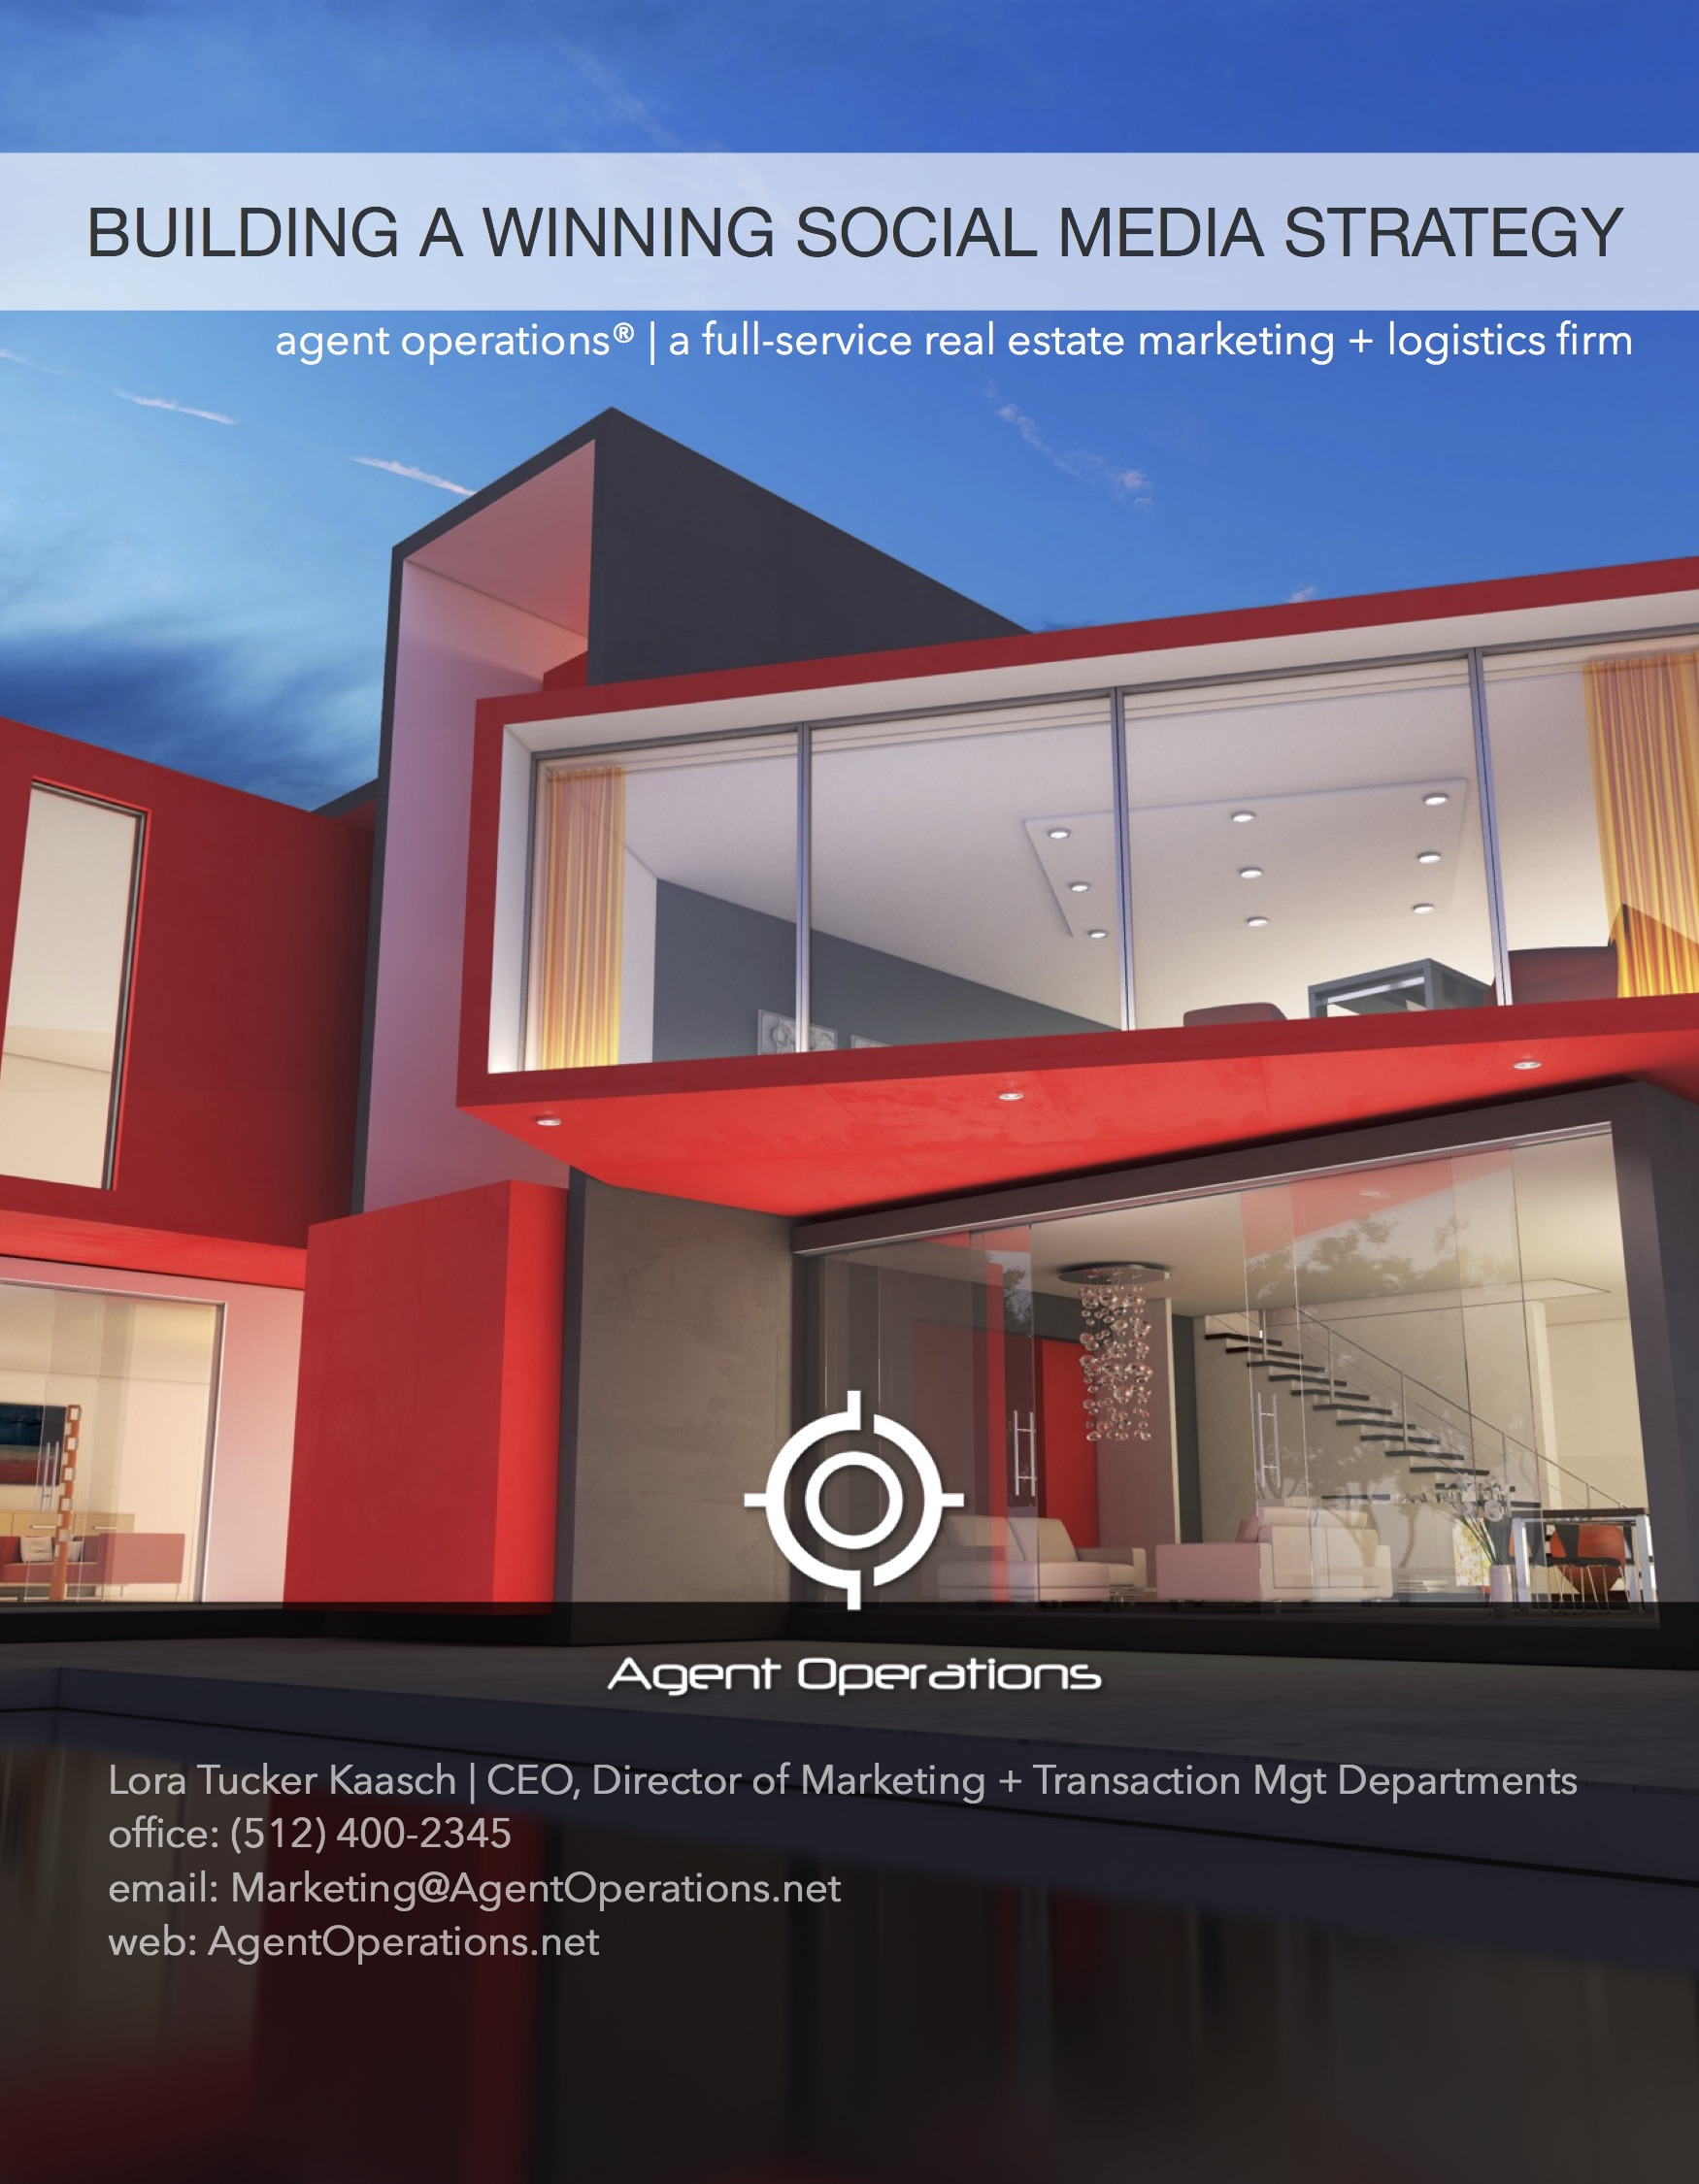 Build A Winning Social Media Strategy For Real Estate Agent Operations The Full Service Realtor And Real Estate Marketing Logistics And Transaction Management Firm